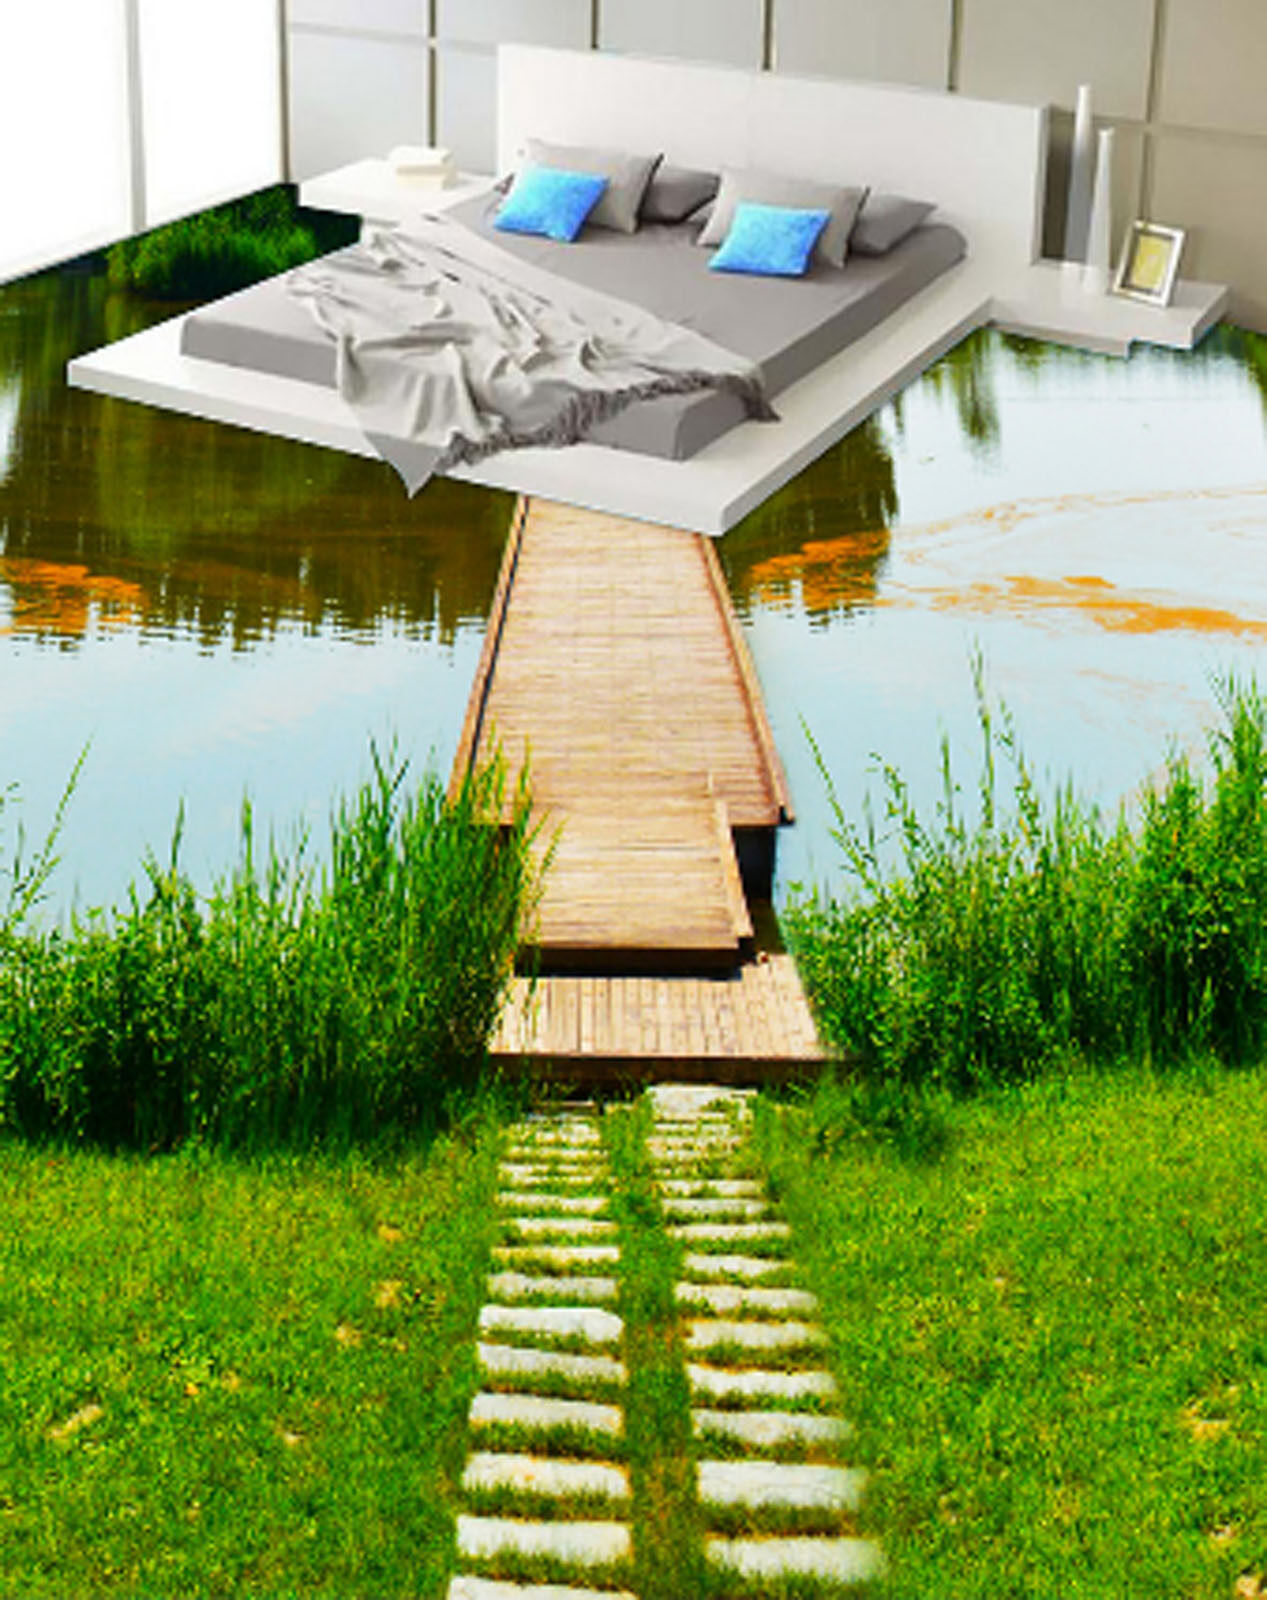 3D Grassland River 505 Floor WallPaper Murals Wallpaper Mural Print AJ AU Lemon